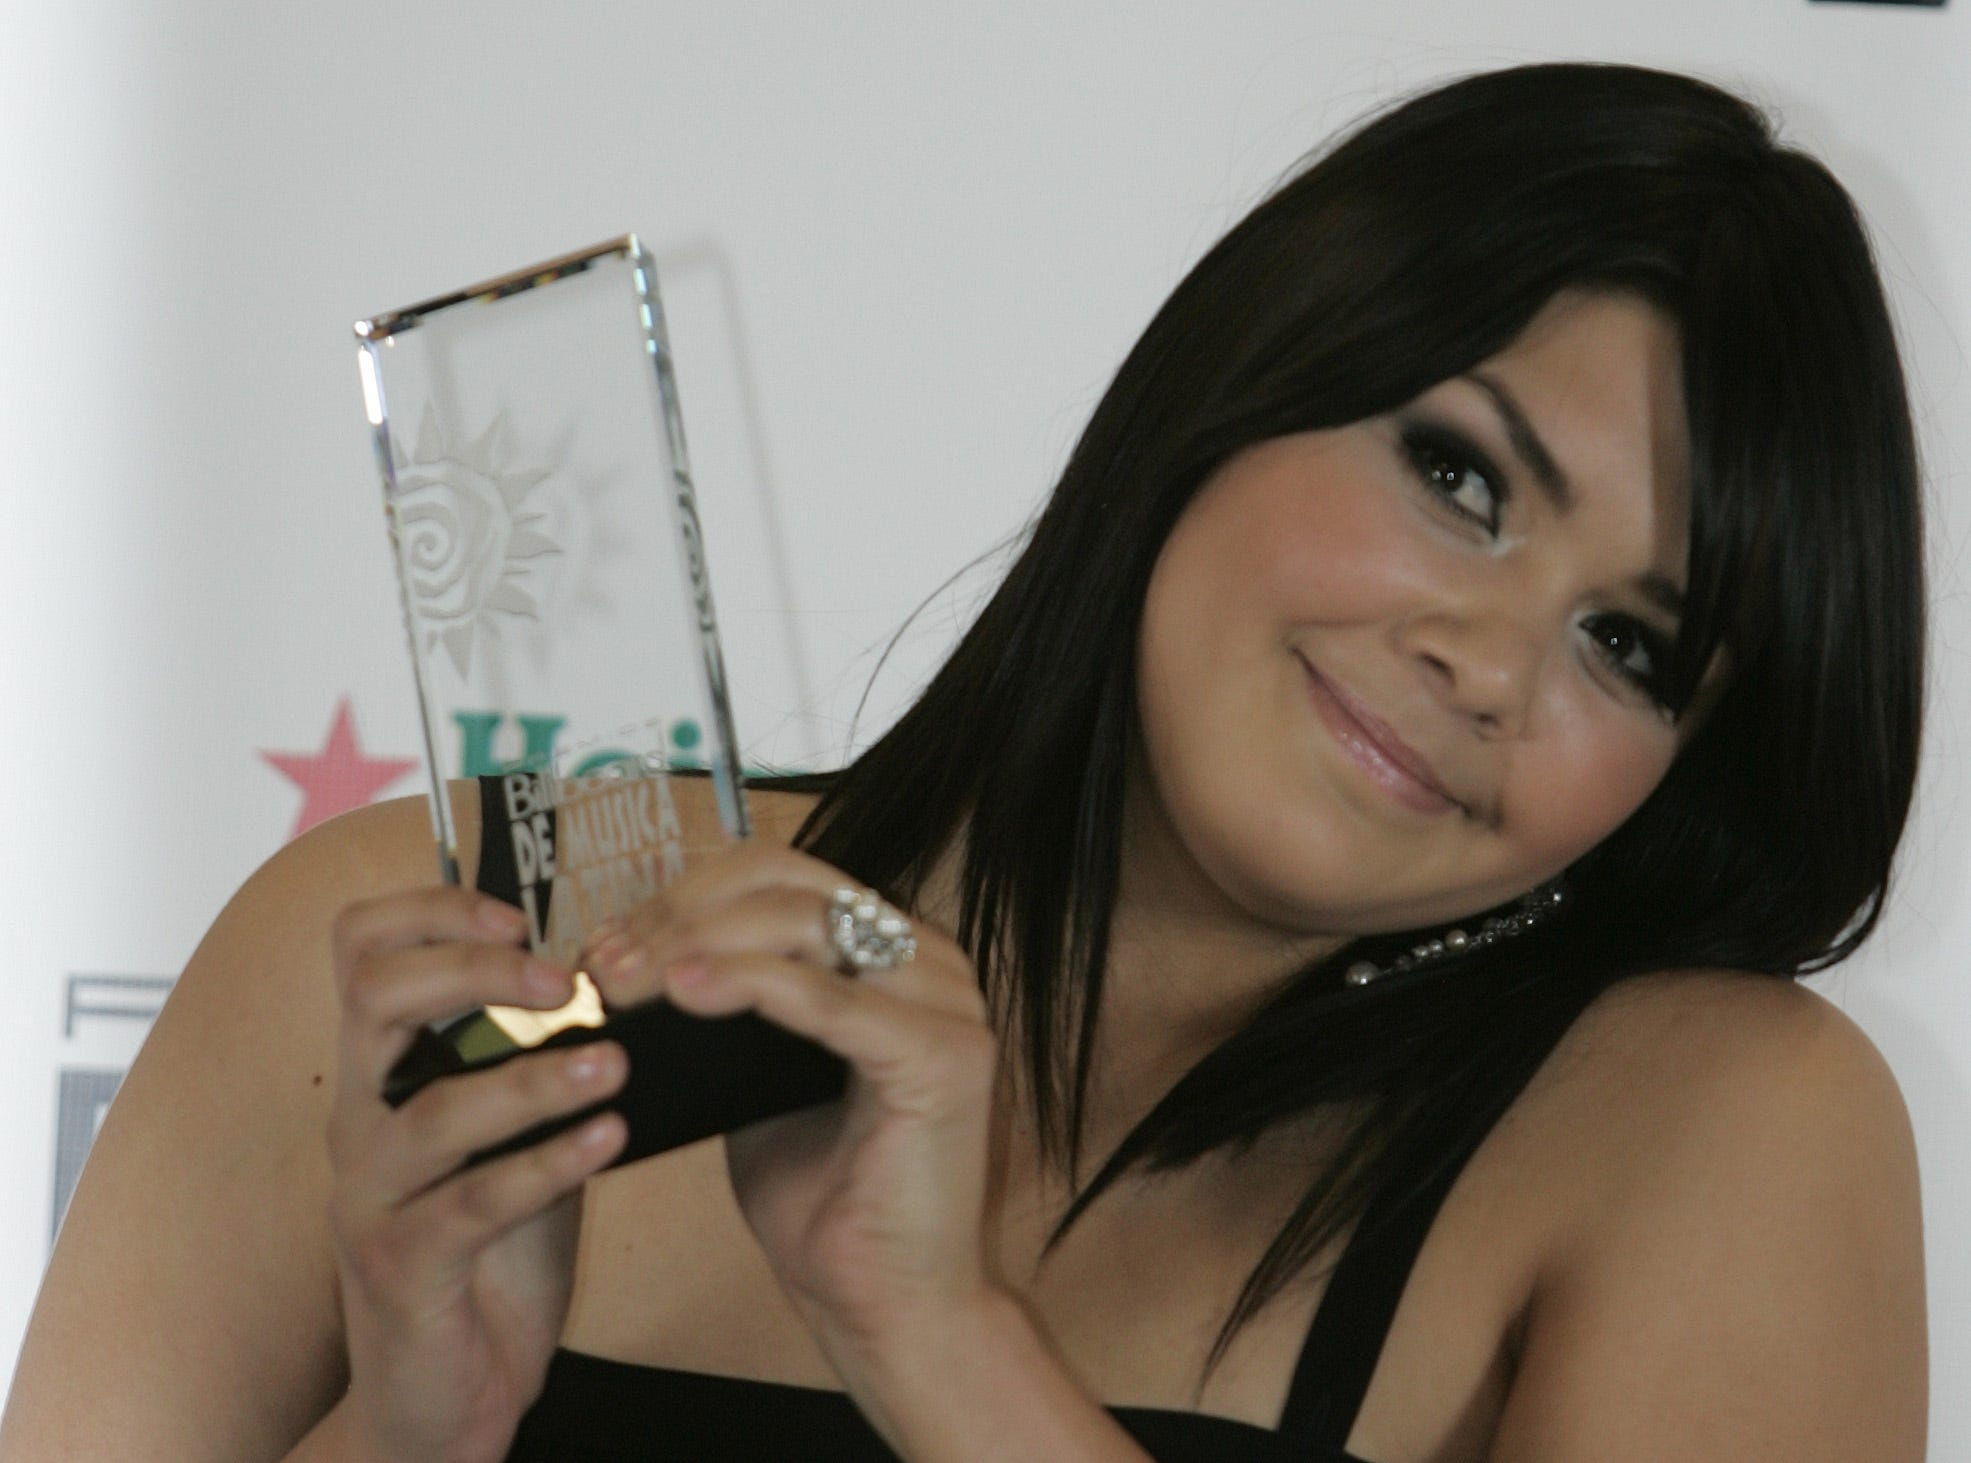 Yuridia poses with her award at the Billboard Latin Music Awards on April 26, 2007, in Coral Gables, Fla.